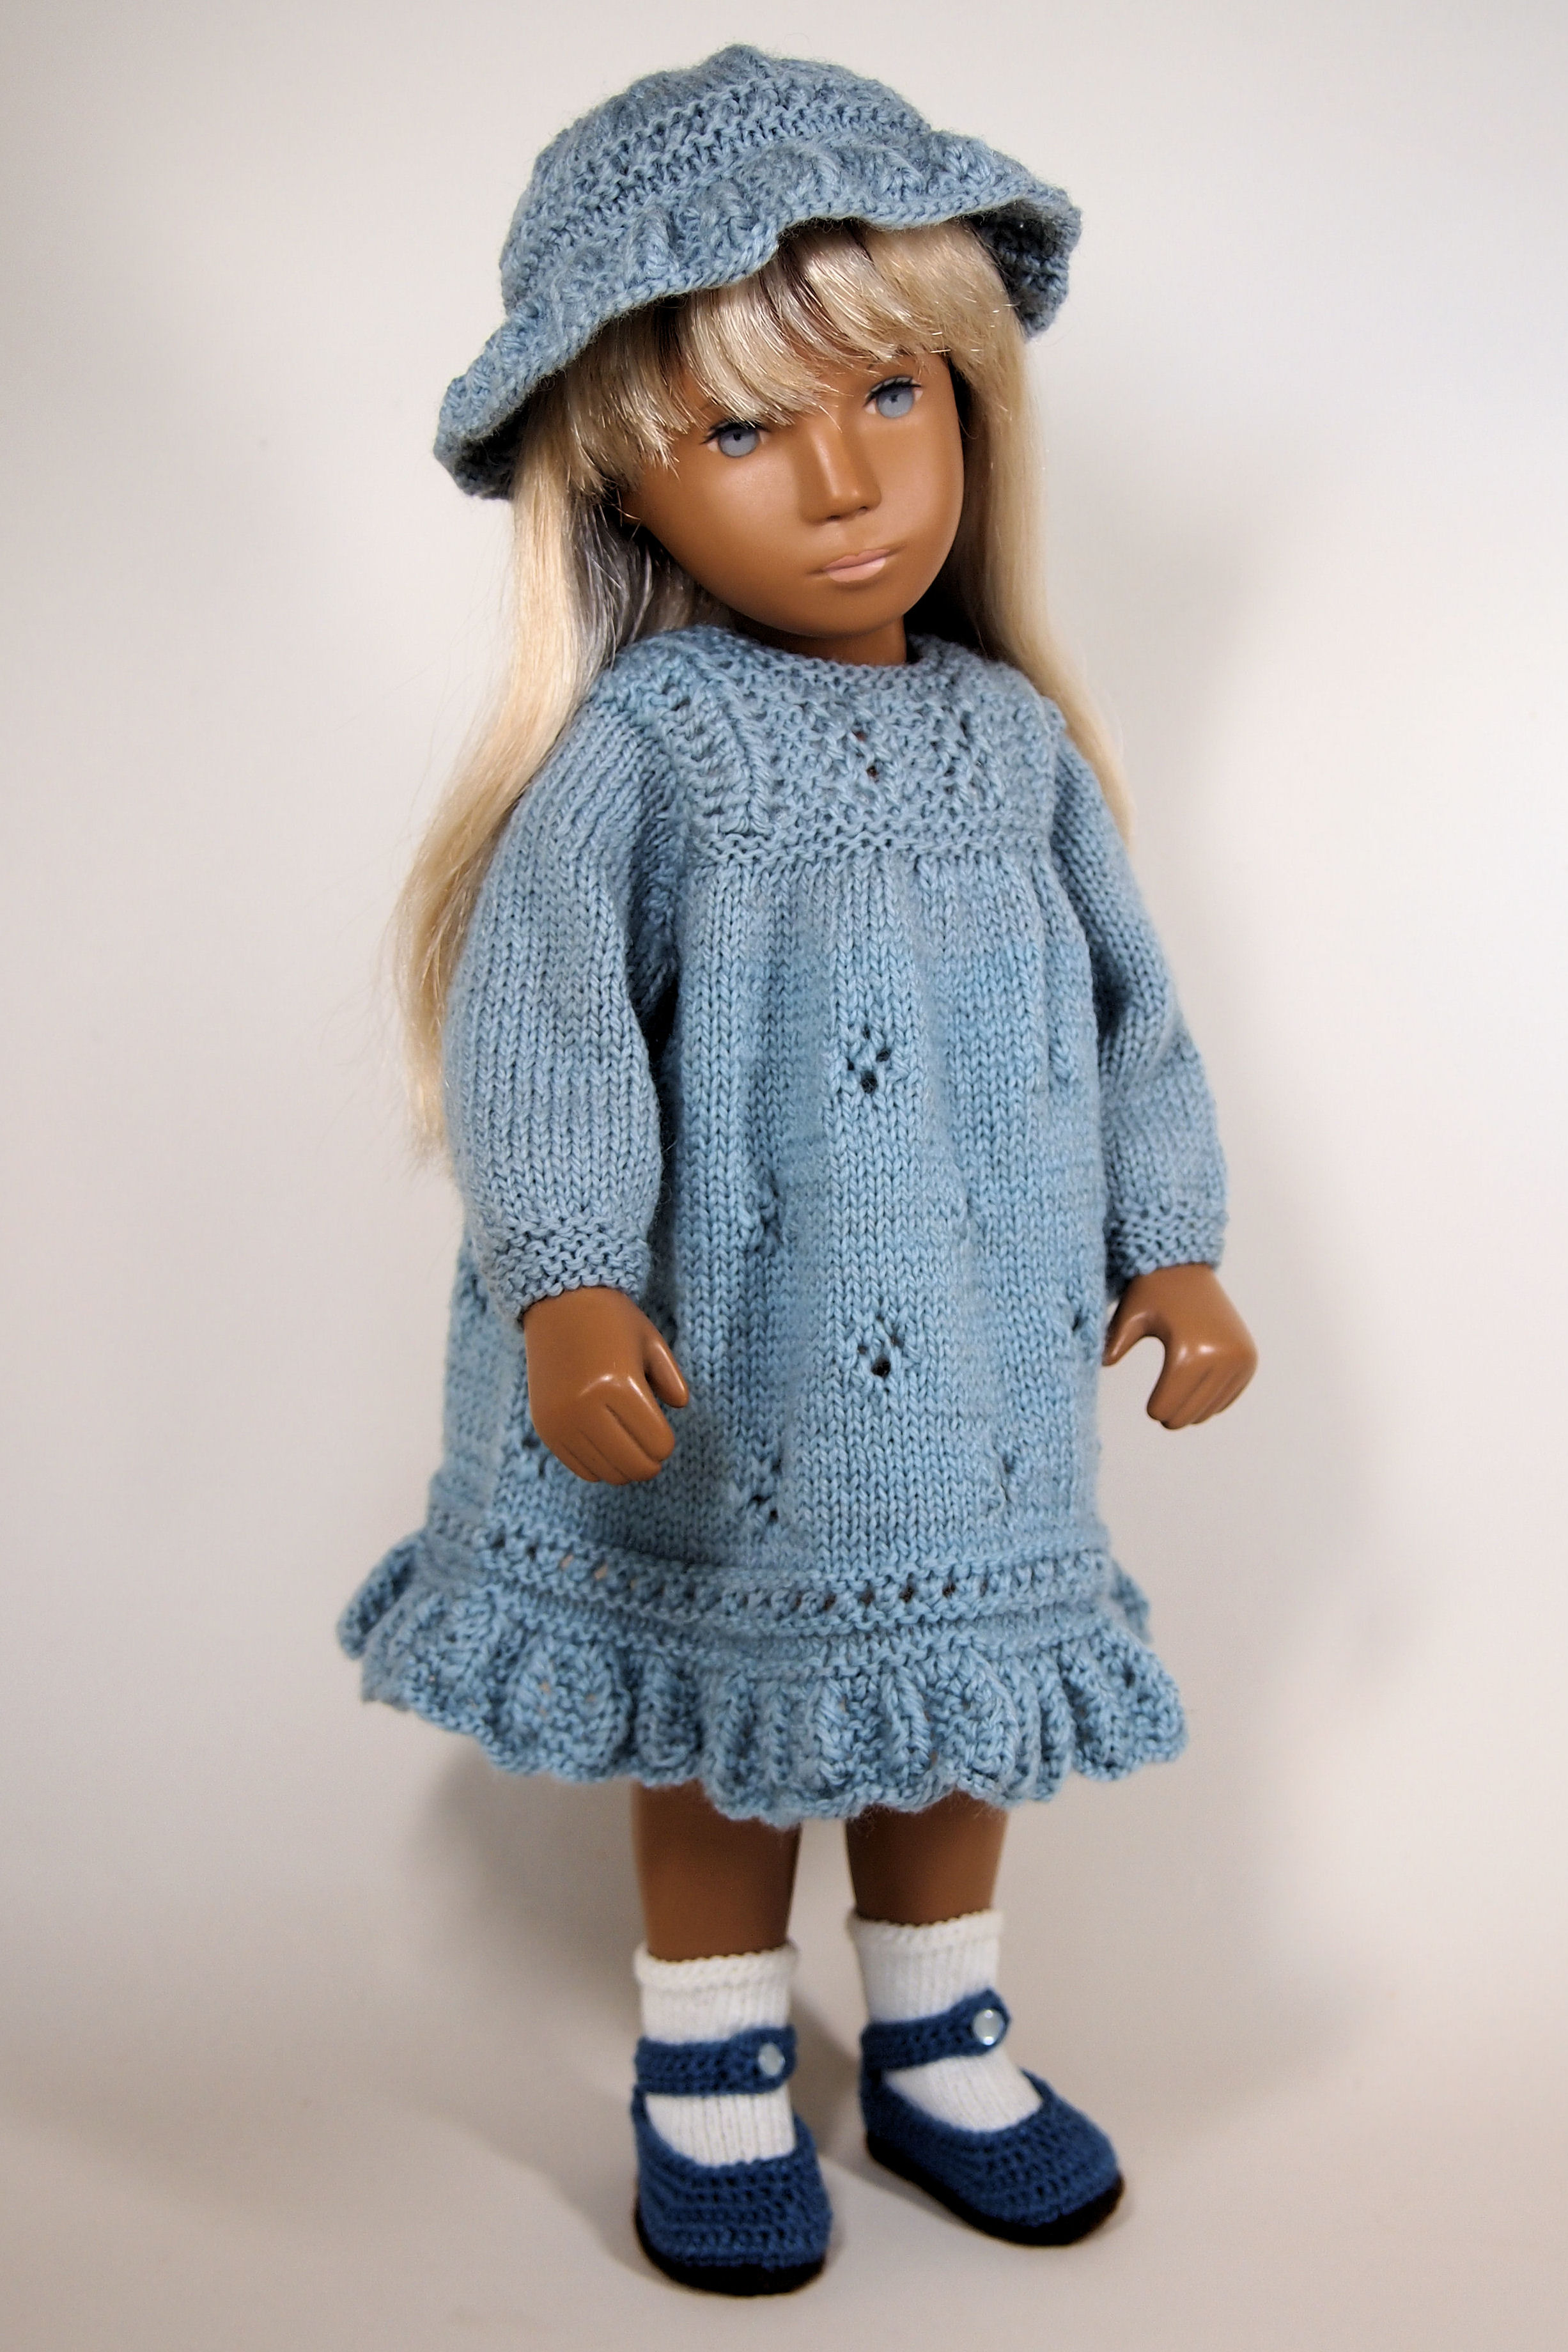 SASHA DOLL hand knitted seamless sweater NO DOLL FREE US SHIPPING long sleeve